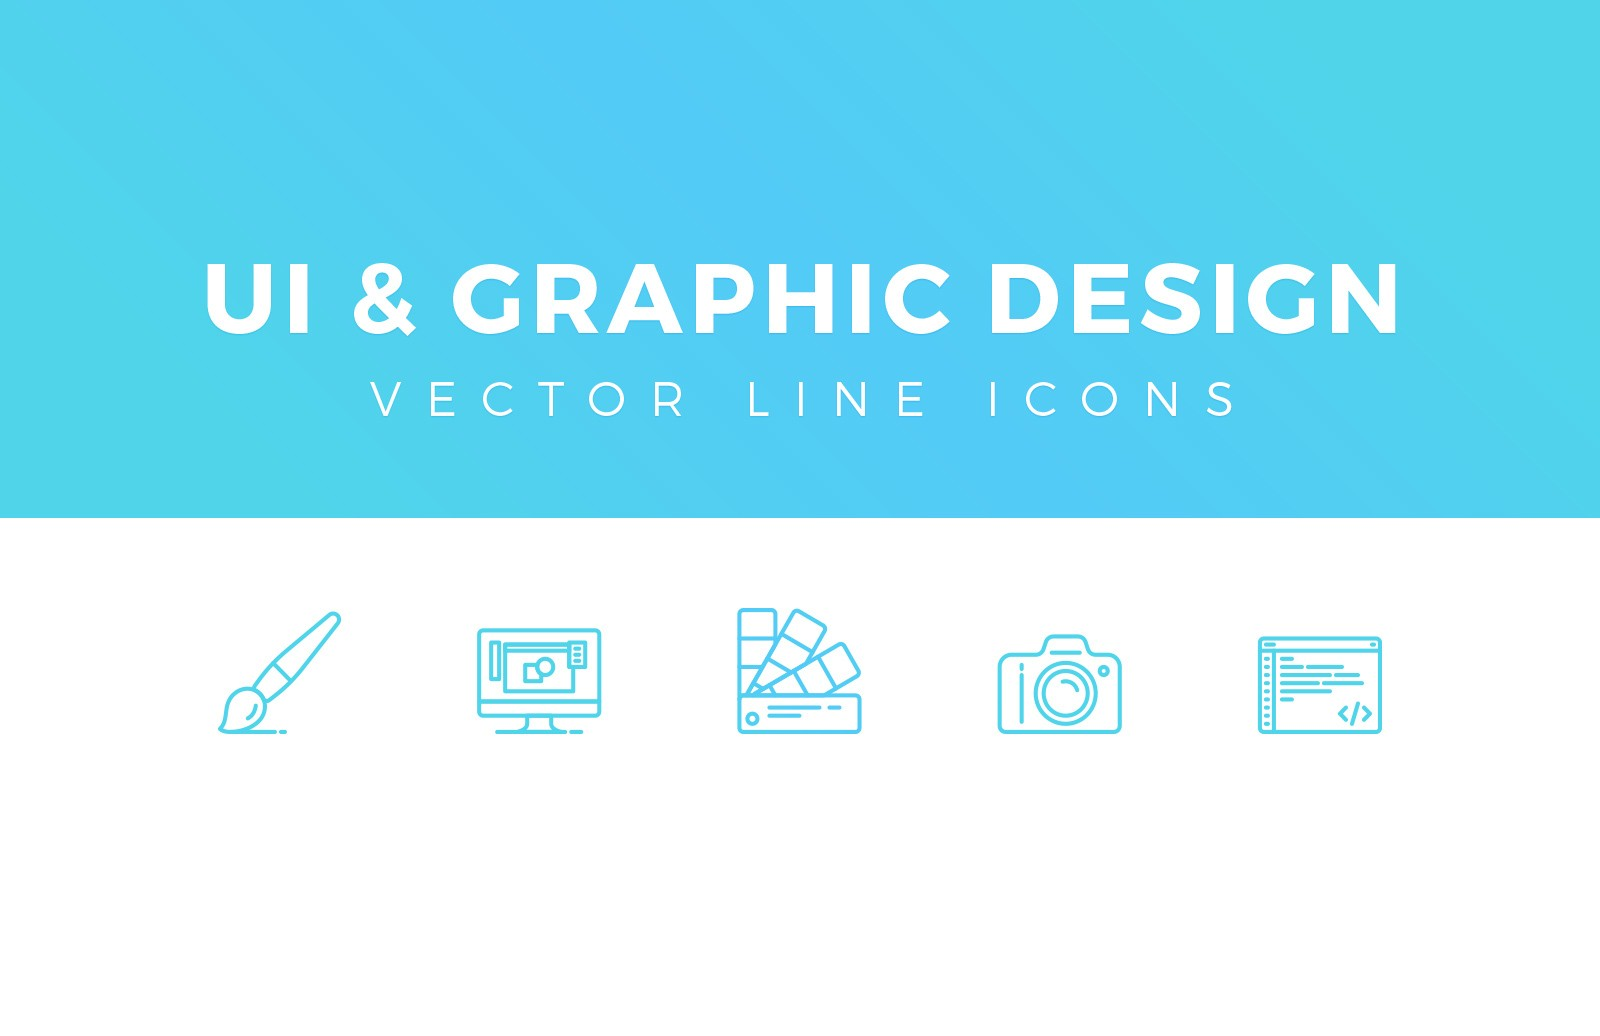 UI & Graphic Design Line Icons 1